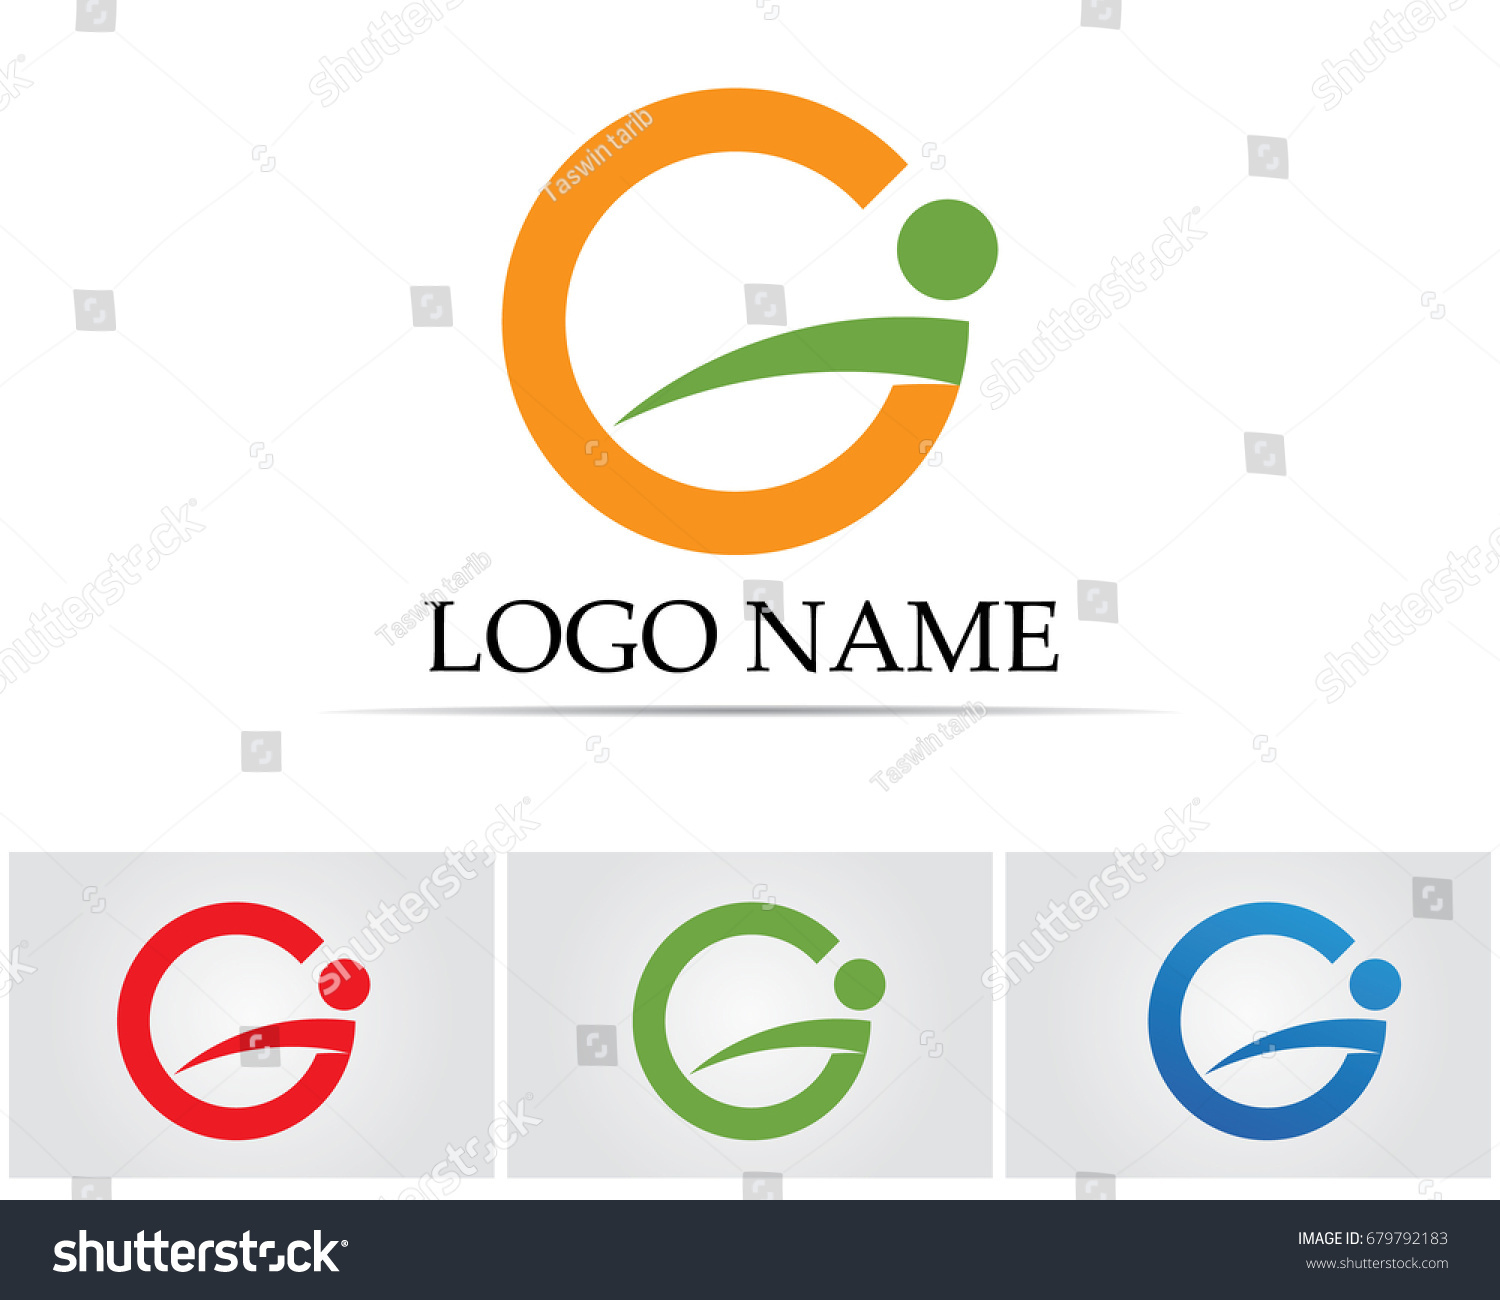 G Symbols Logo Template Stock Vector Royalty Free 679792183